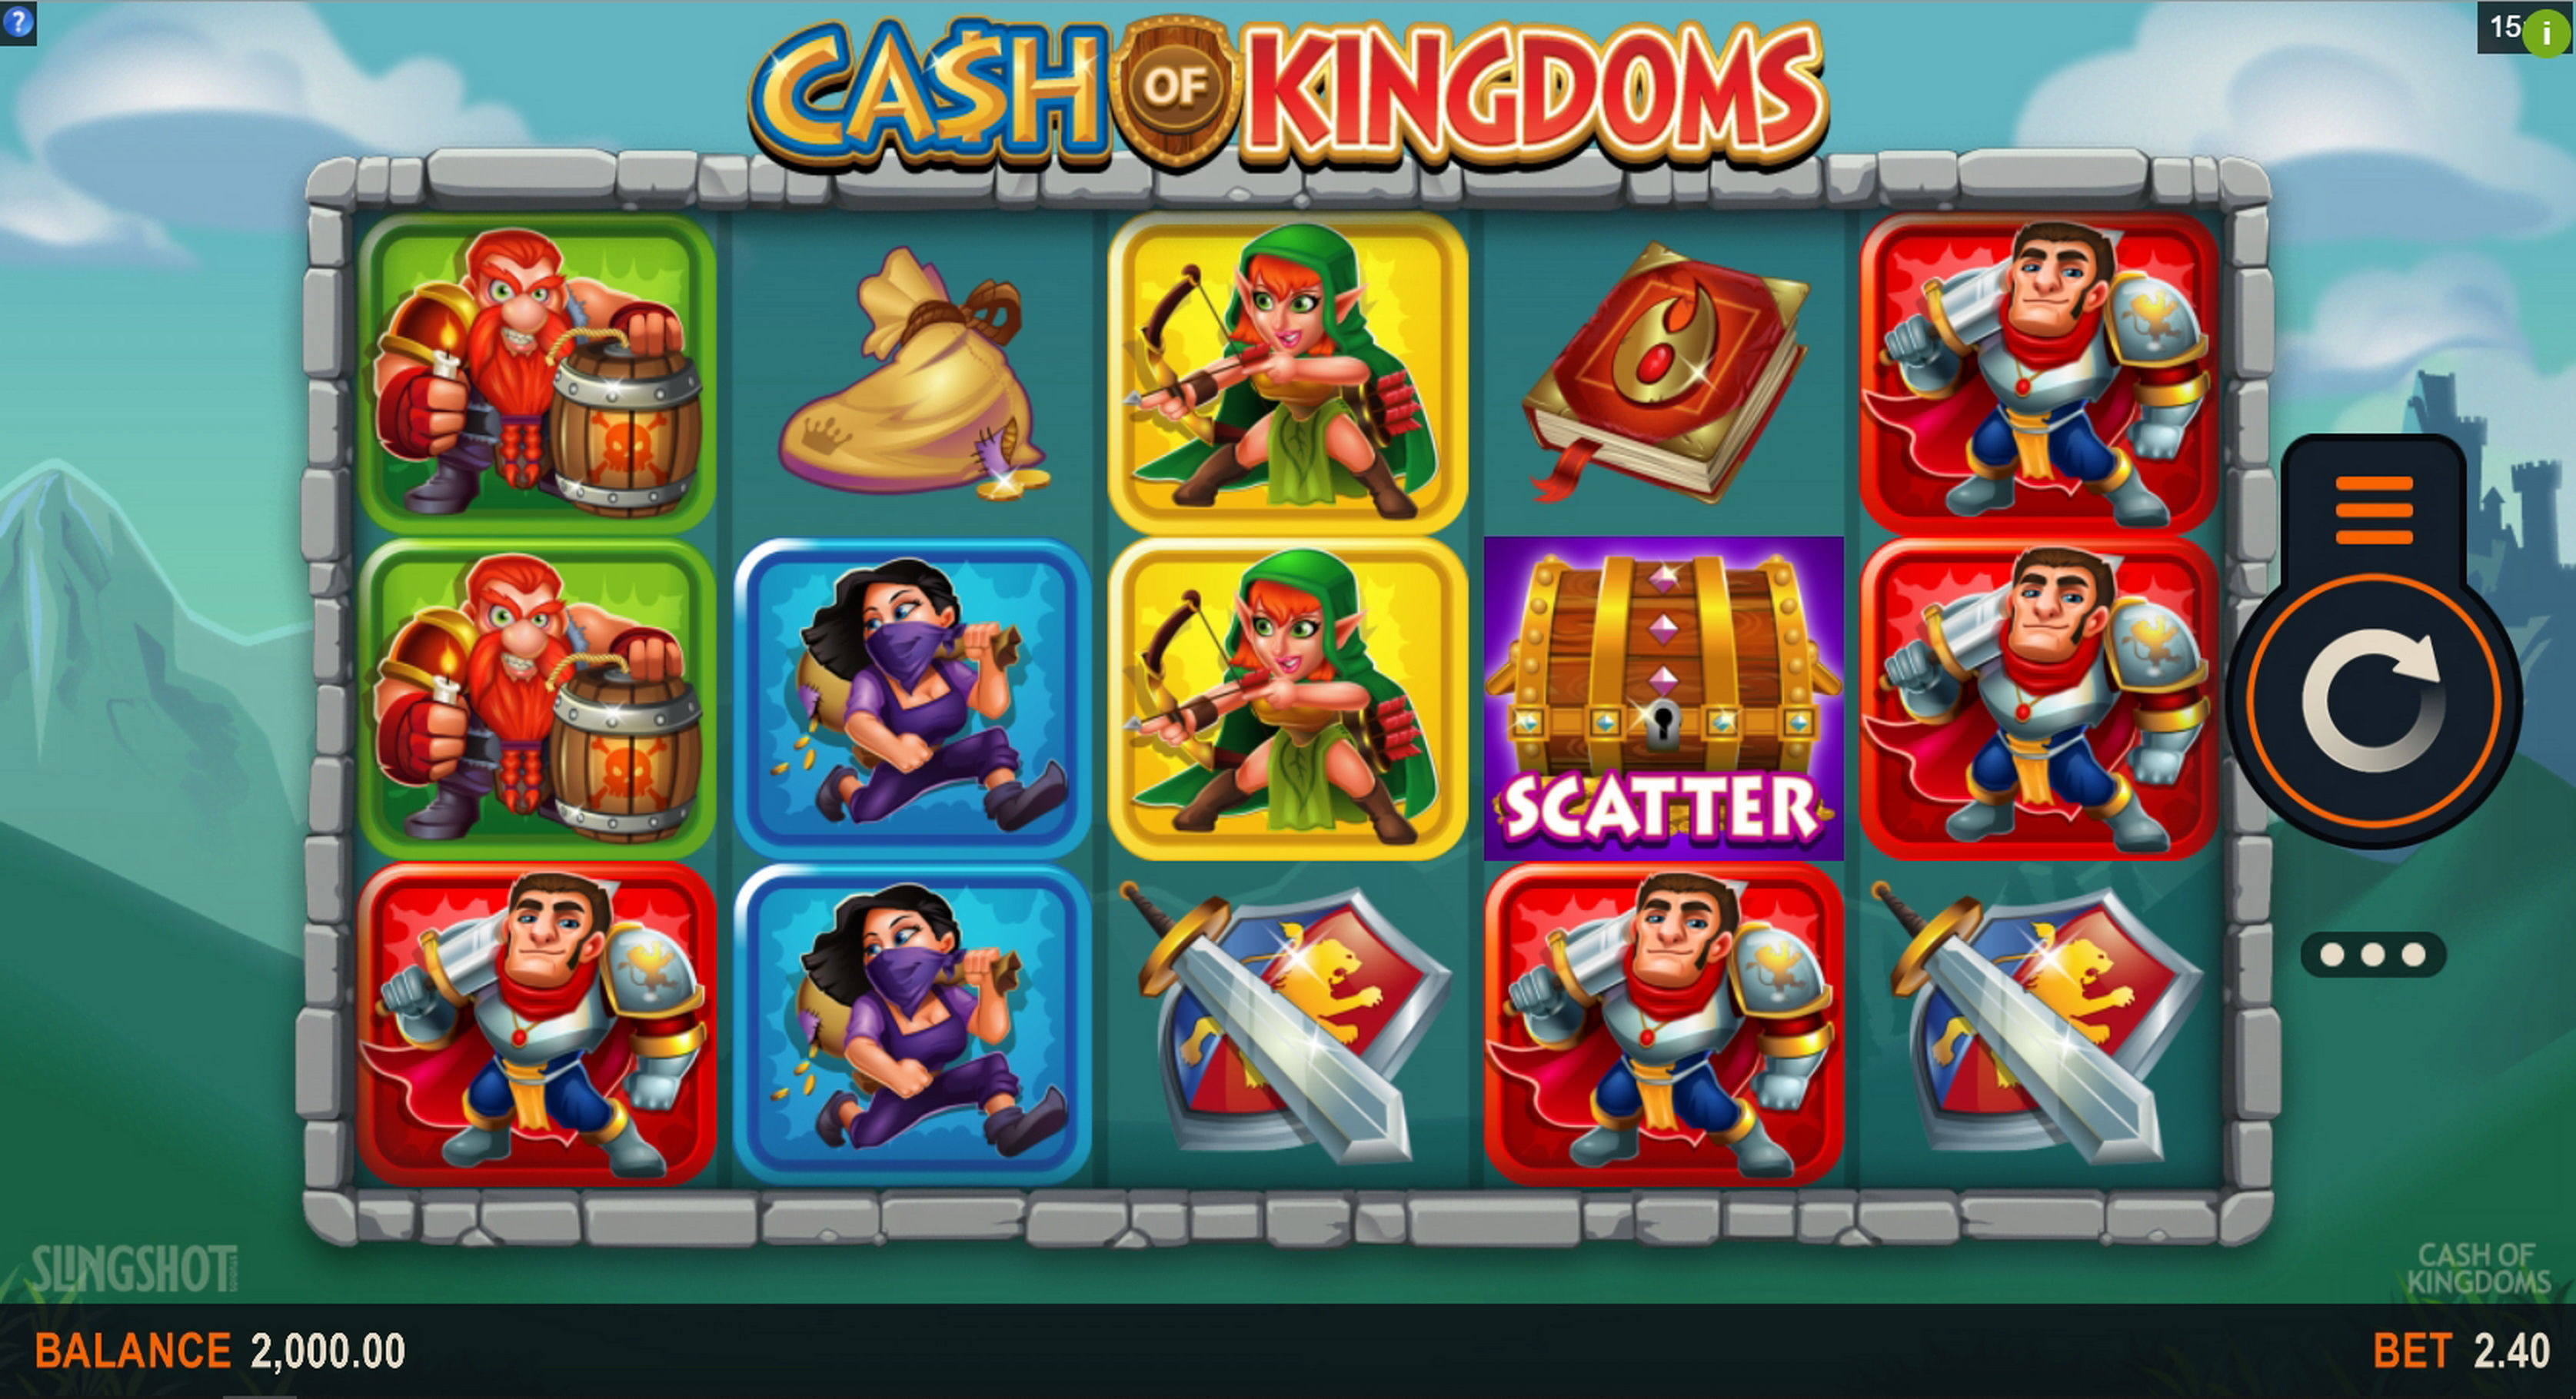 Reels in Cash of Kingdoms Slot Game by Slingshot Studios